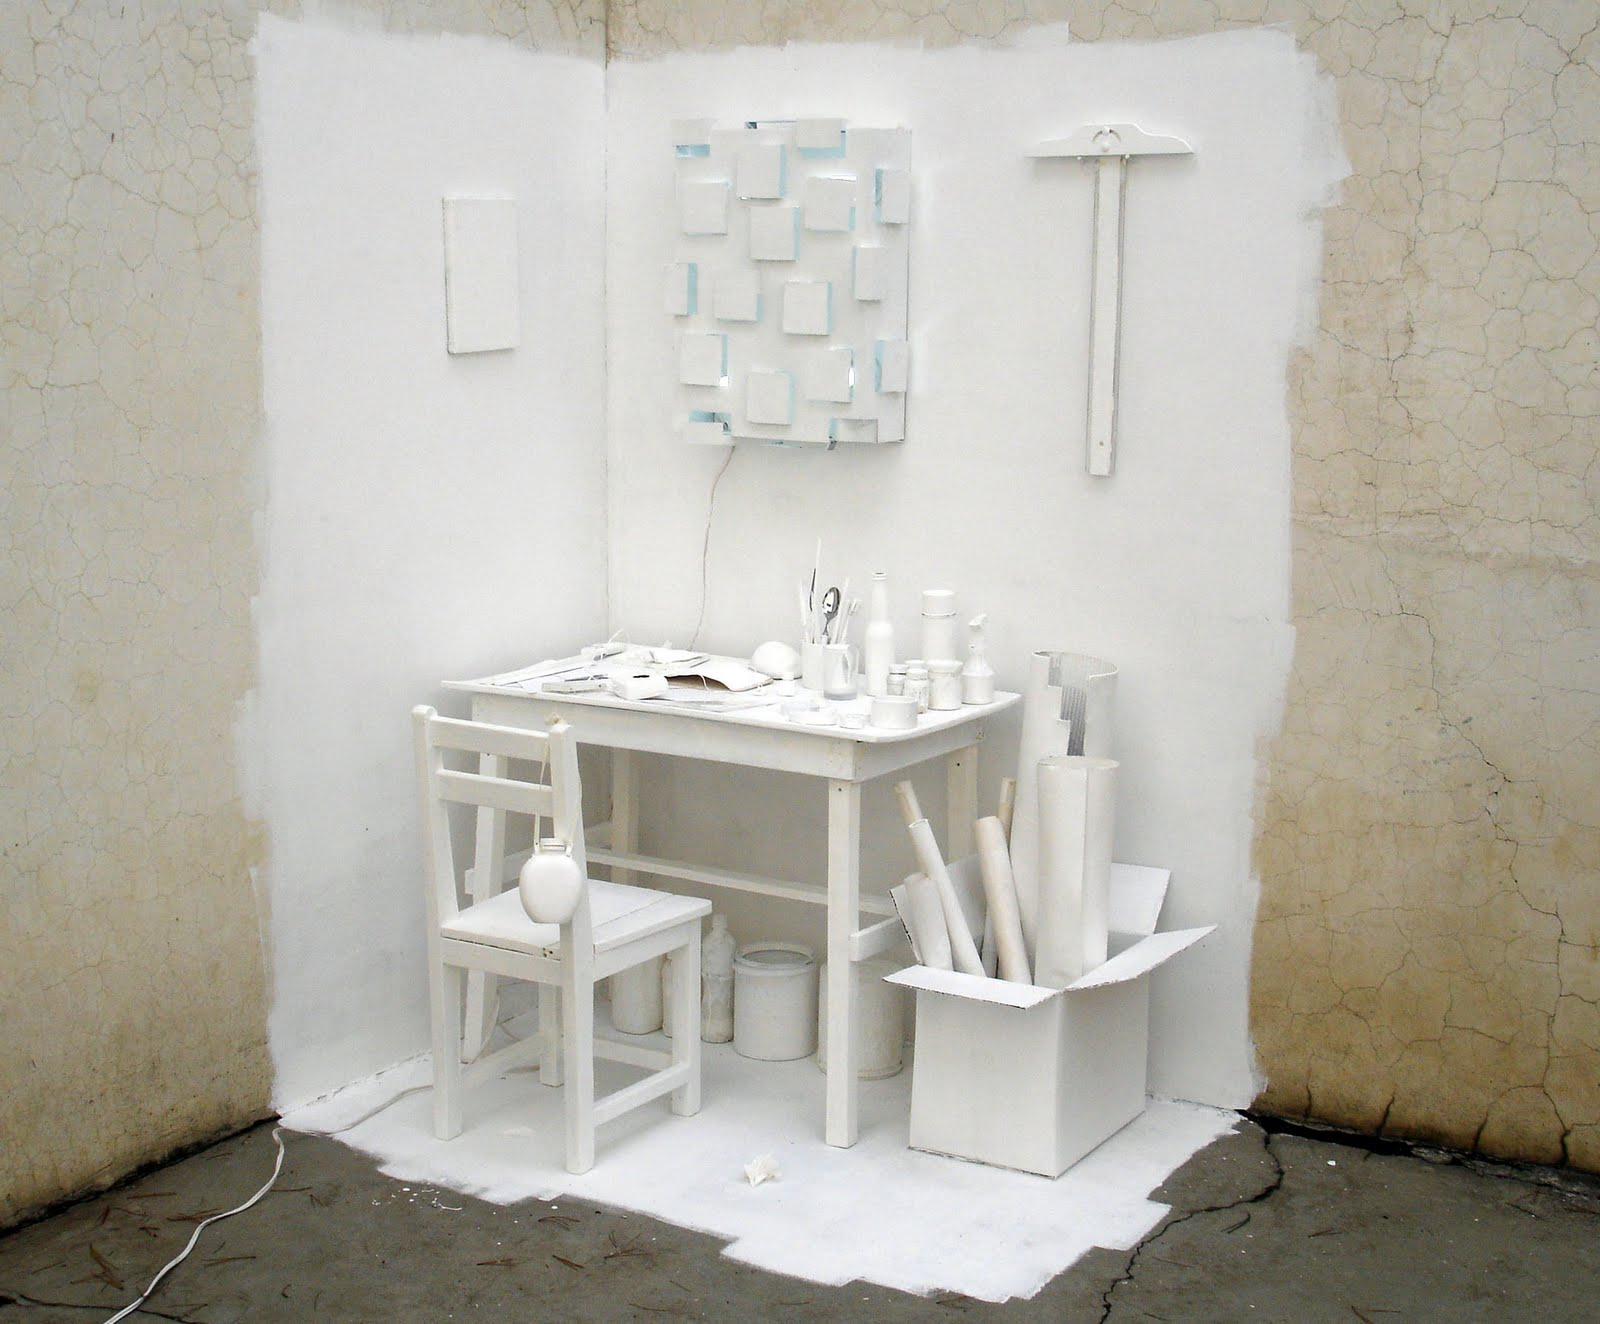 Installation with furniture and white paint